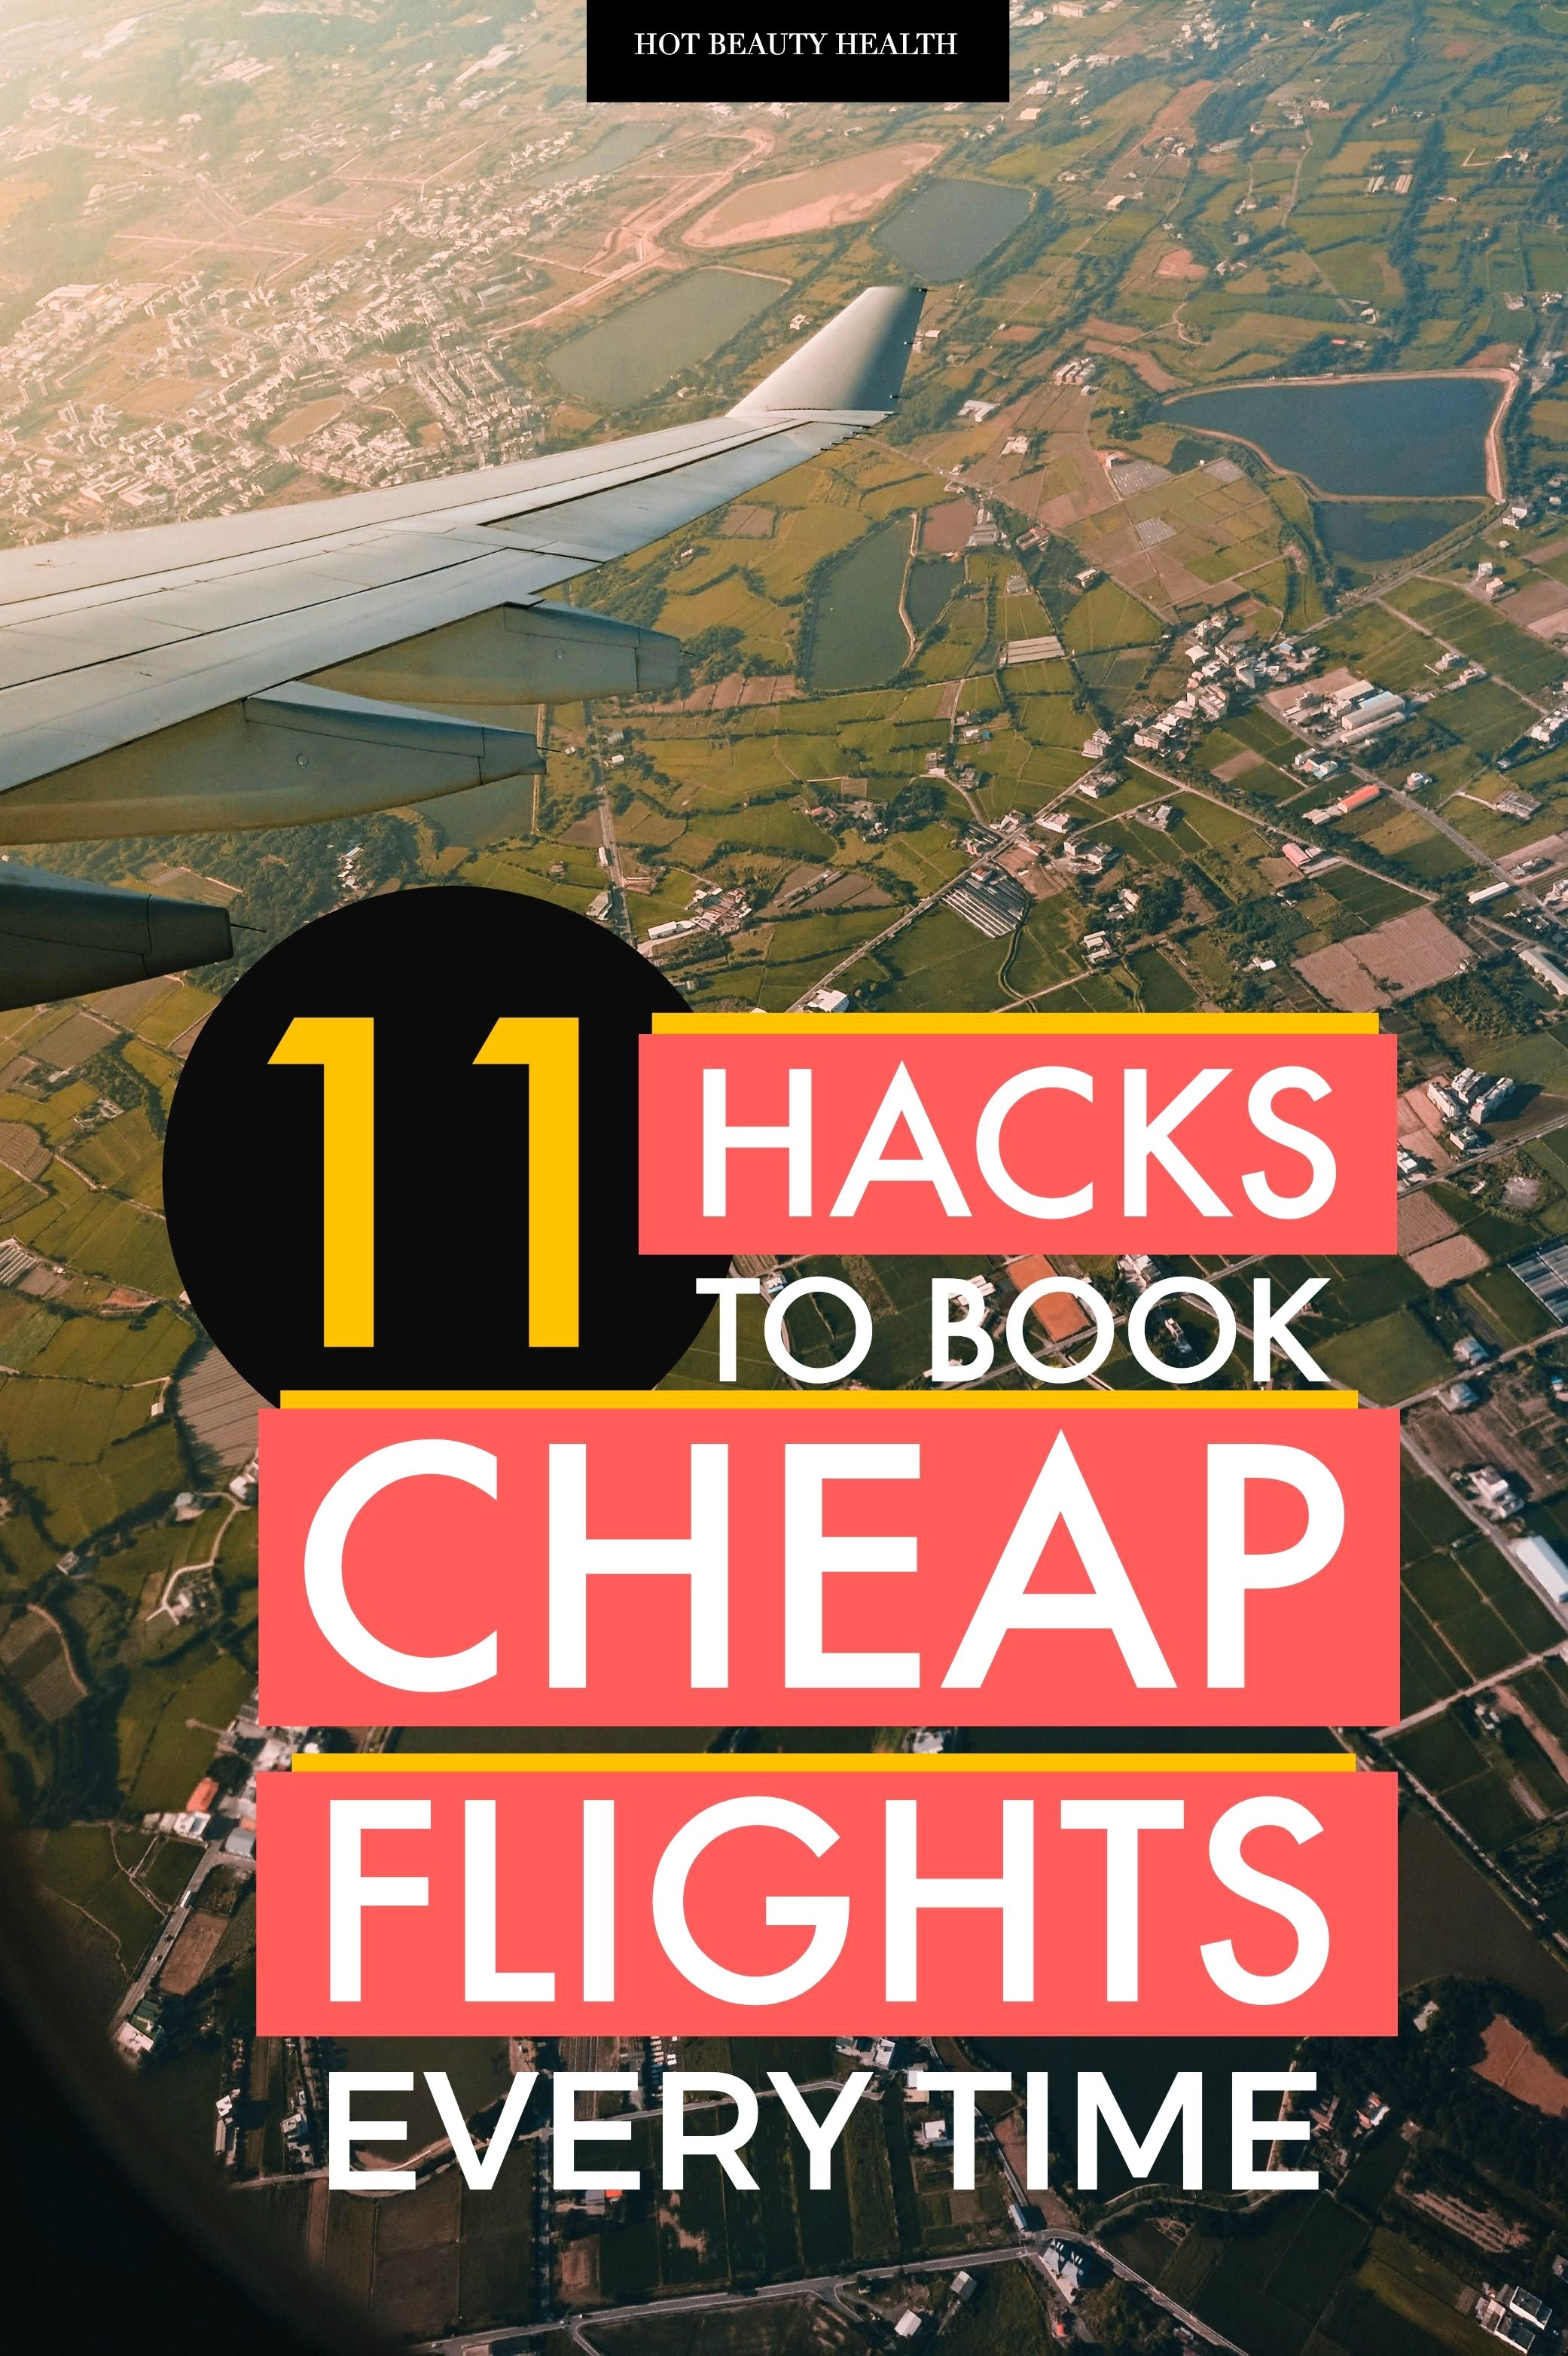 The Cheapest Way To Travel Europe The Ultimate Cheap Transportation In Europe Guide With Images Cheap Flights How To Fly Cheap Book Cheap Flights